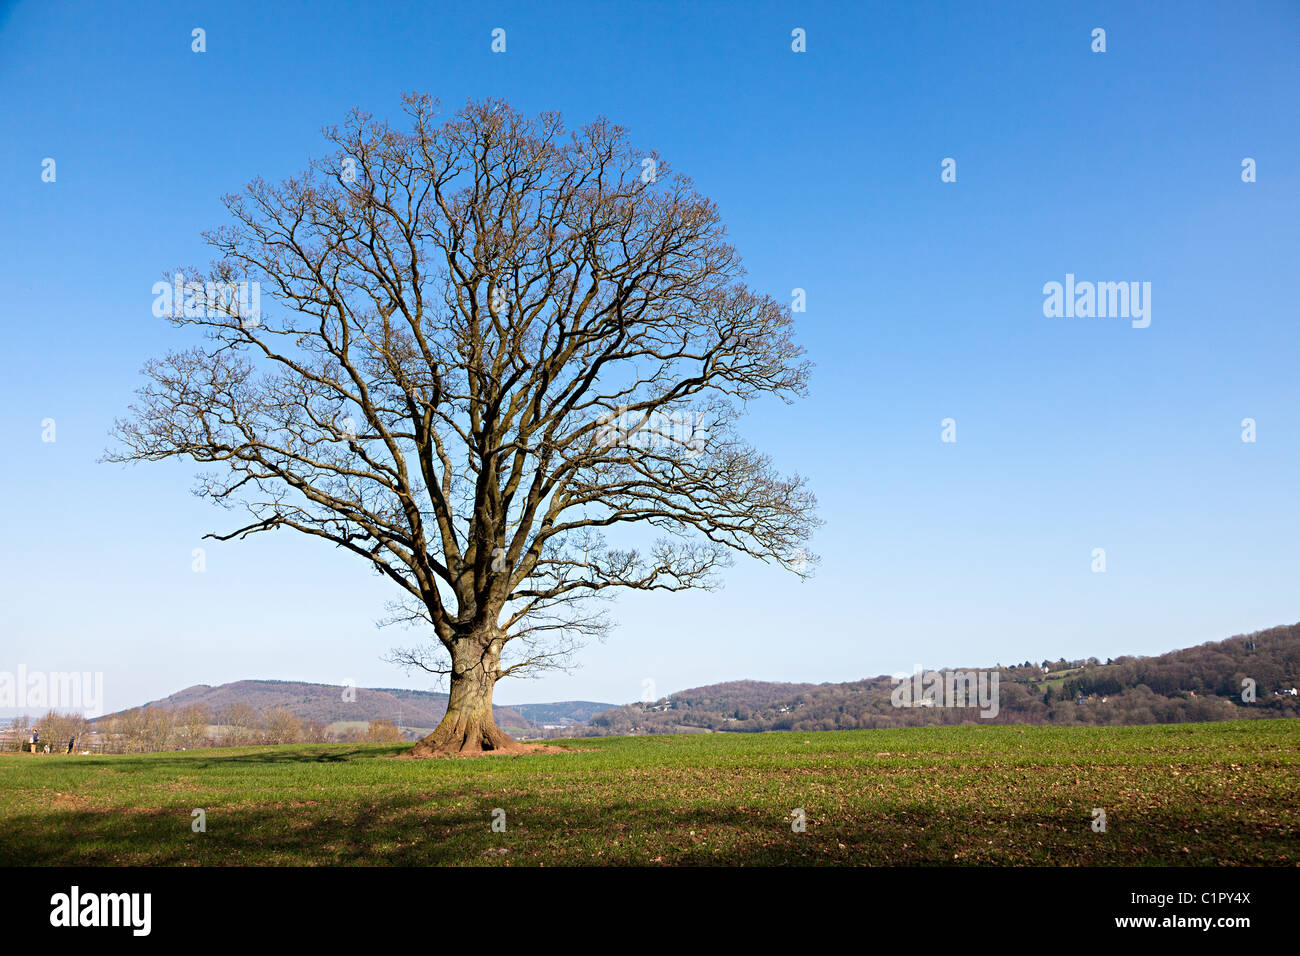 Oak tree in winter with no leaves Herefordshire England UK - Stock Image